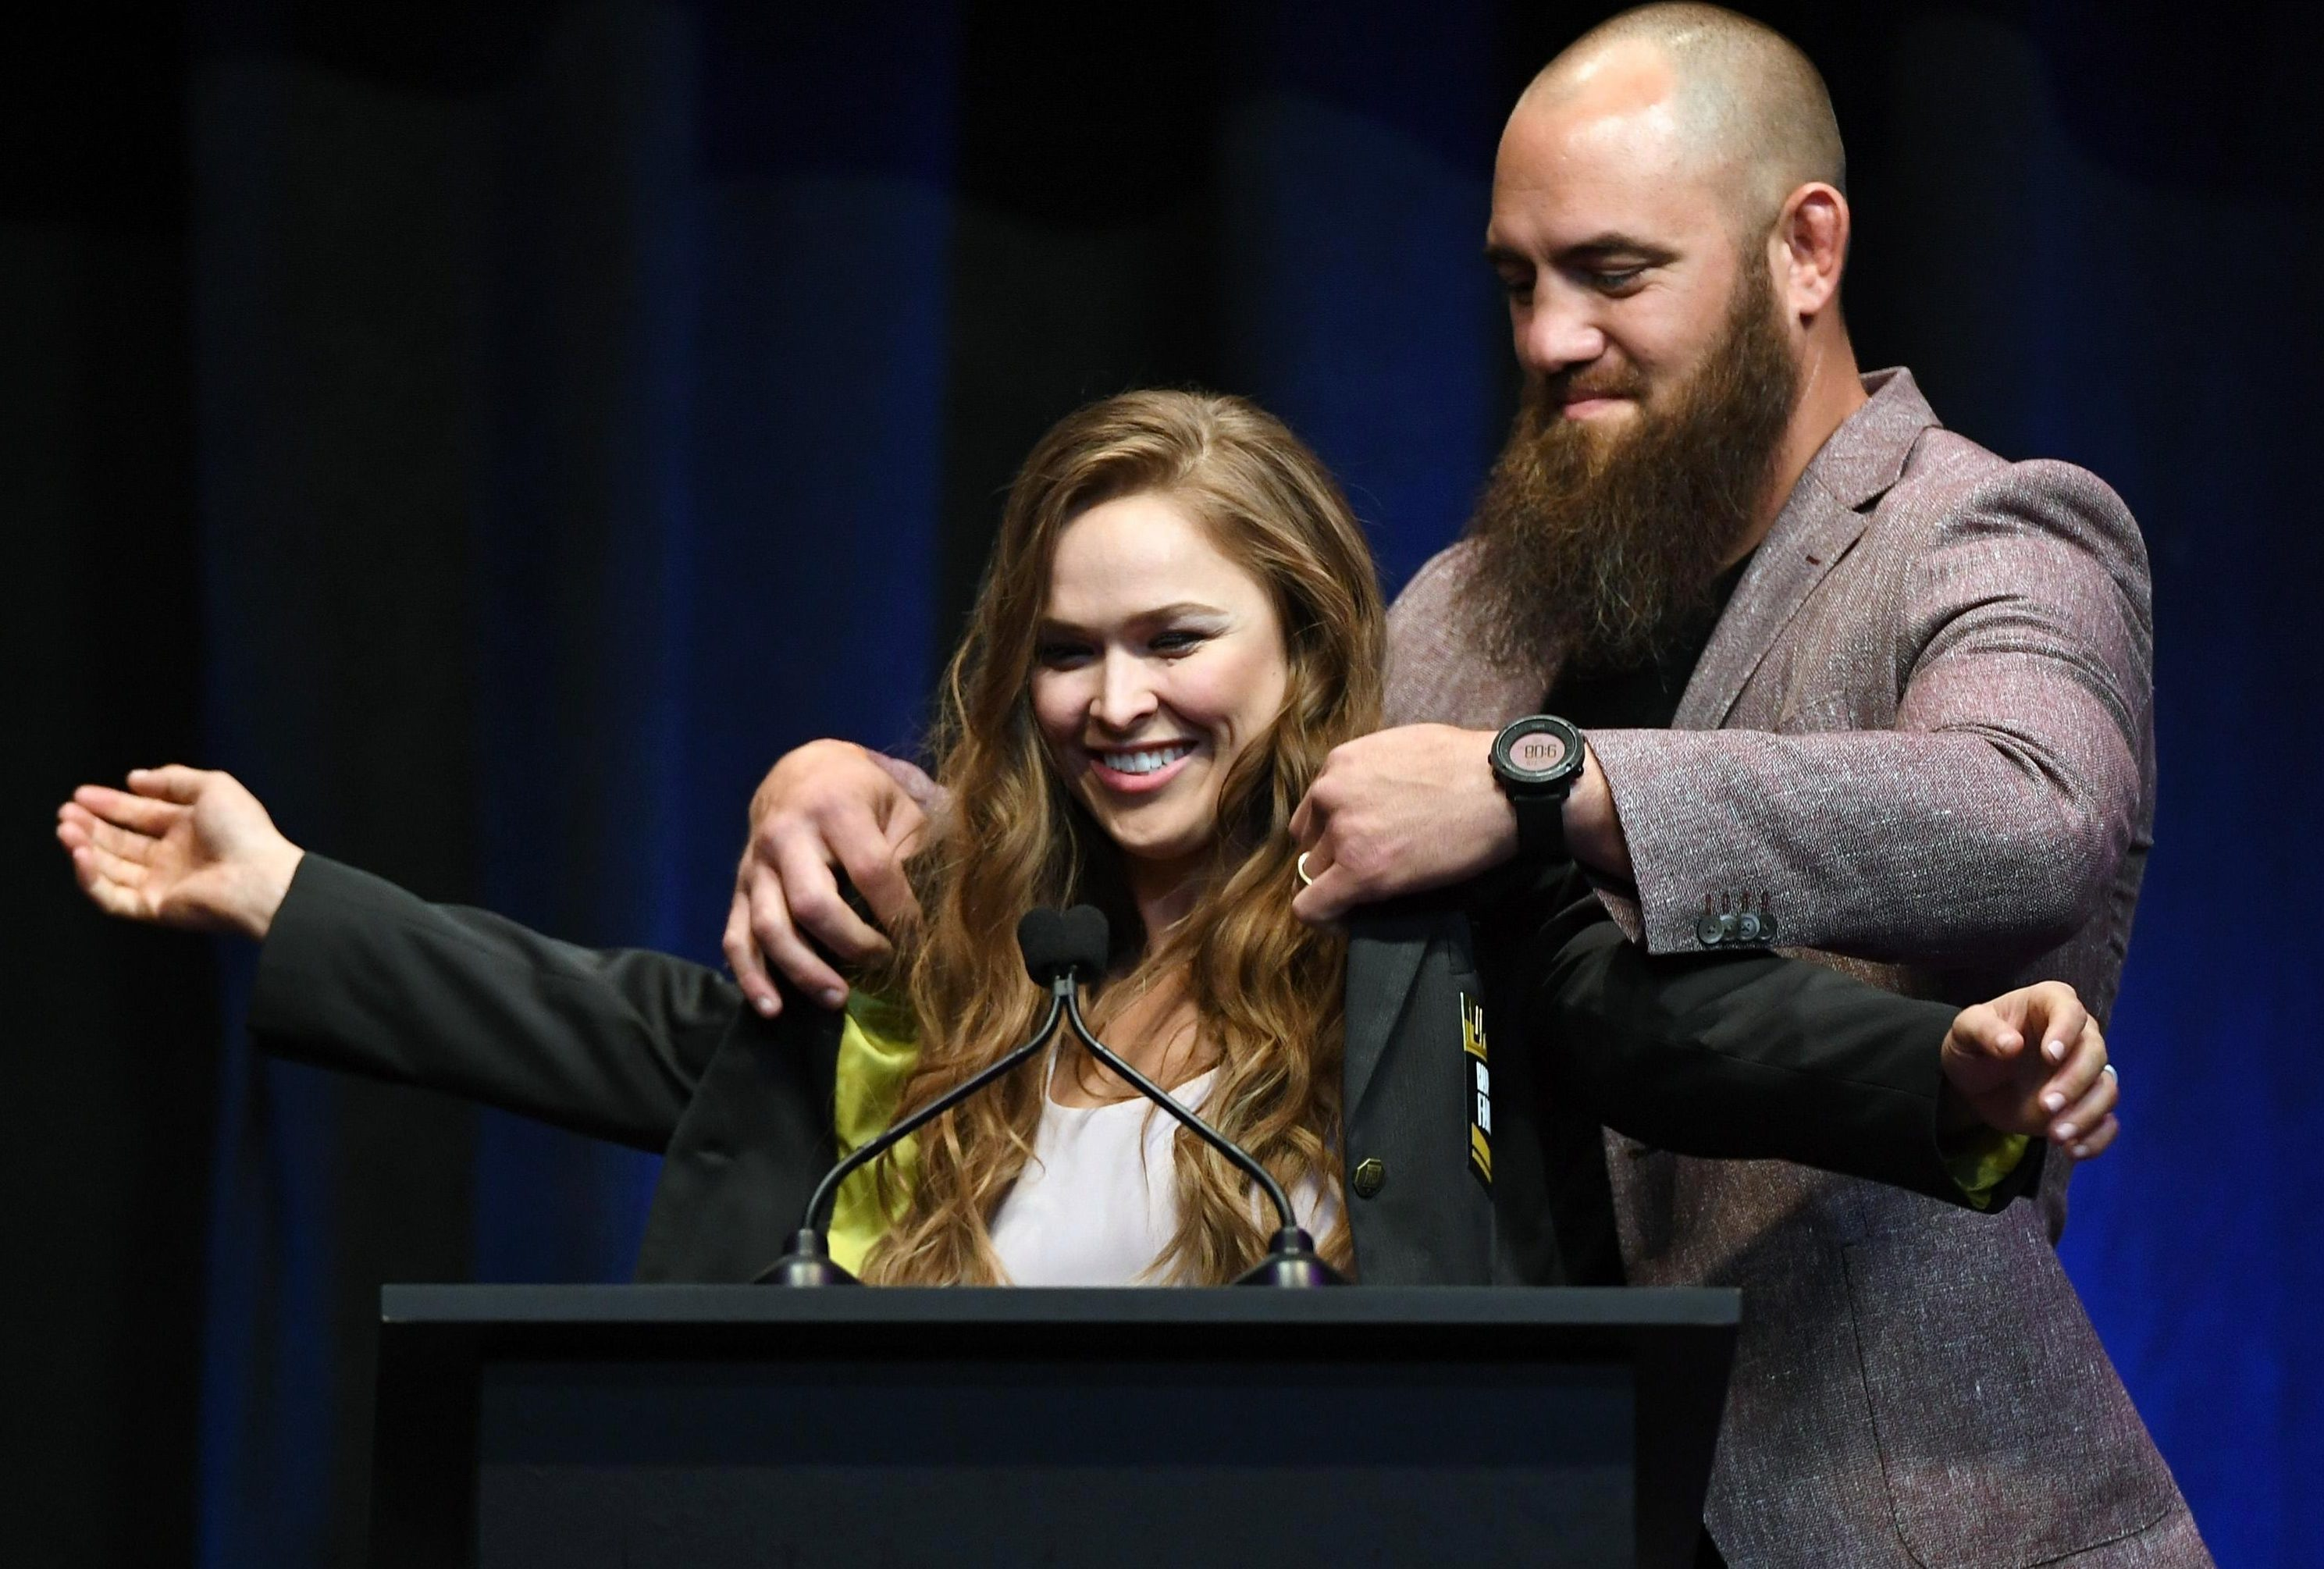 Travis Browne and Ronda Rousey would work together